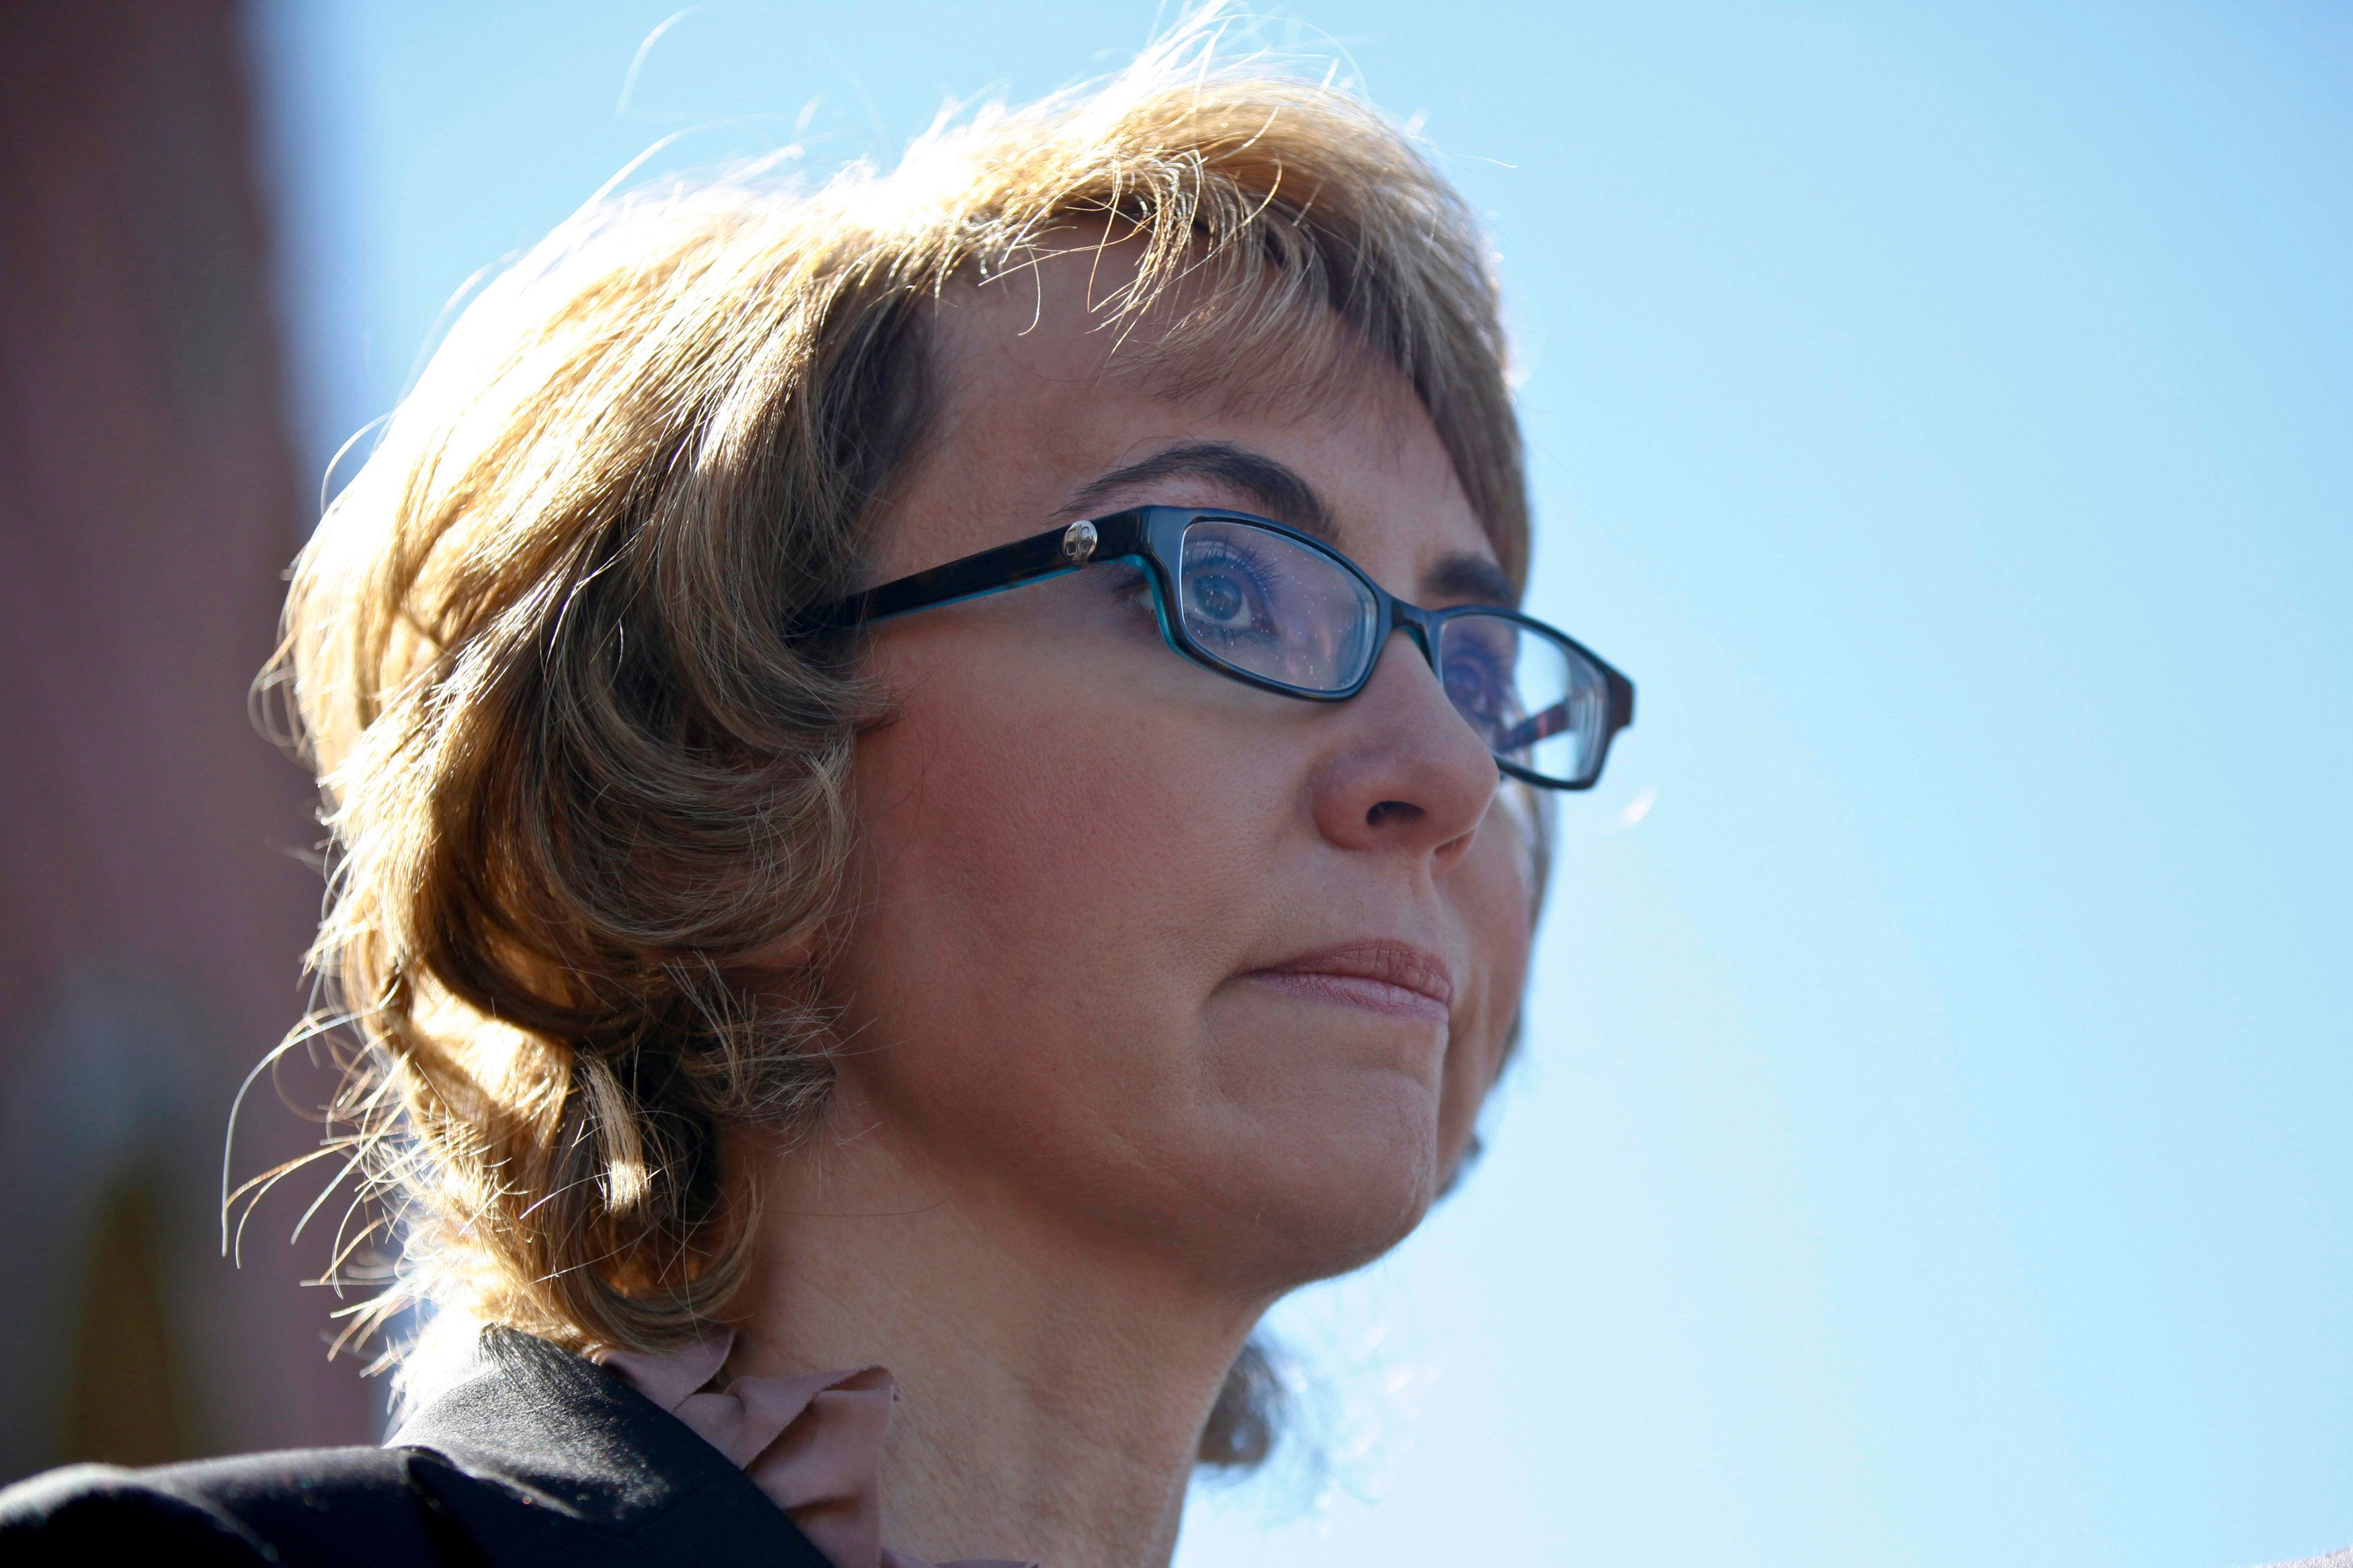 Former congresswoman Gabrielle Giffords addresses a news conference for victims of the January 8, 2011 Tucson shooting, at the Safeway grocery store parking lot where Giffords was shot during the incident in Tucson March 6, 2013. The news conference was held to urge action on common sense solutions to reduce gun violence, including universal background checks, which will be taken up by the Senate Judiciary Committee later this week. REUTERS/Samantha Sais (UNITED STATES - Tags: CRIME LAW POLITICS PROFILE)